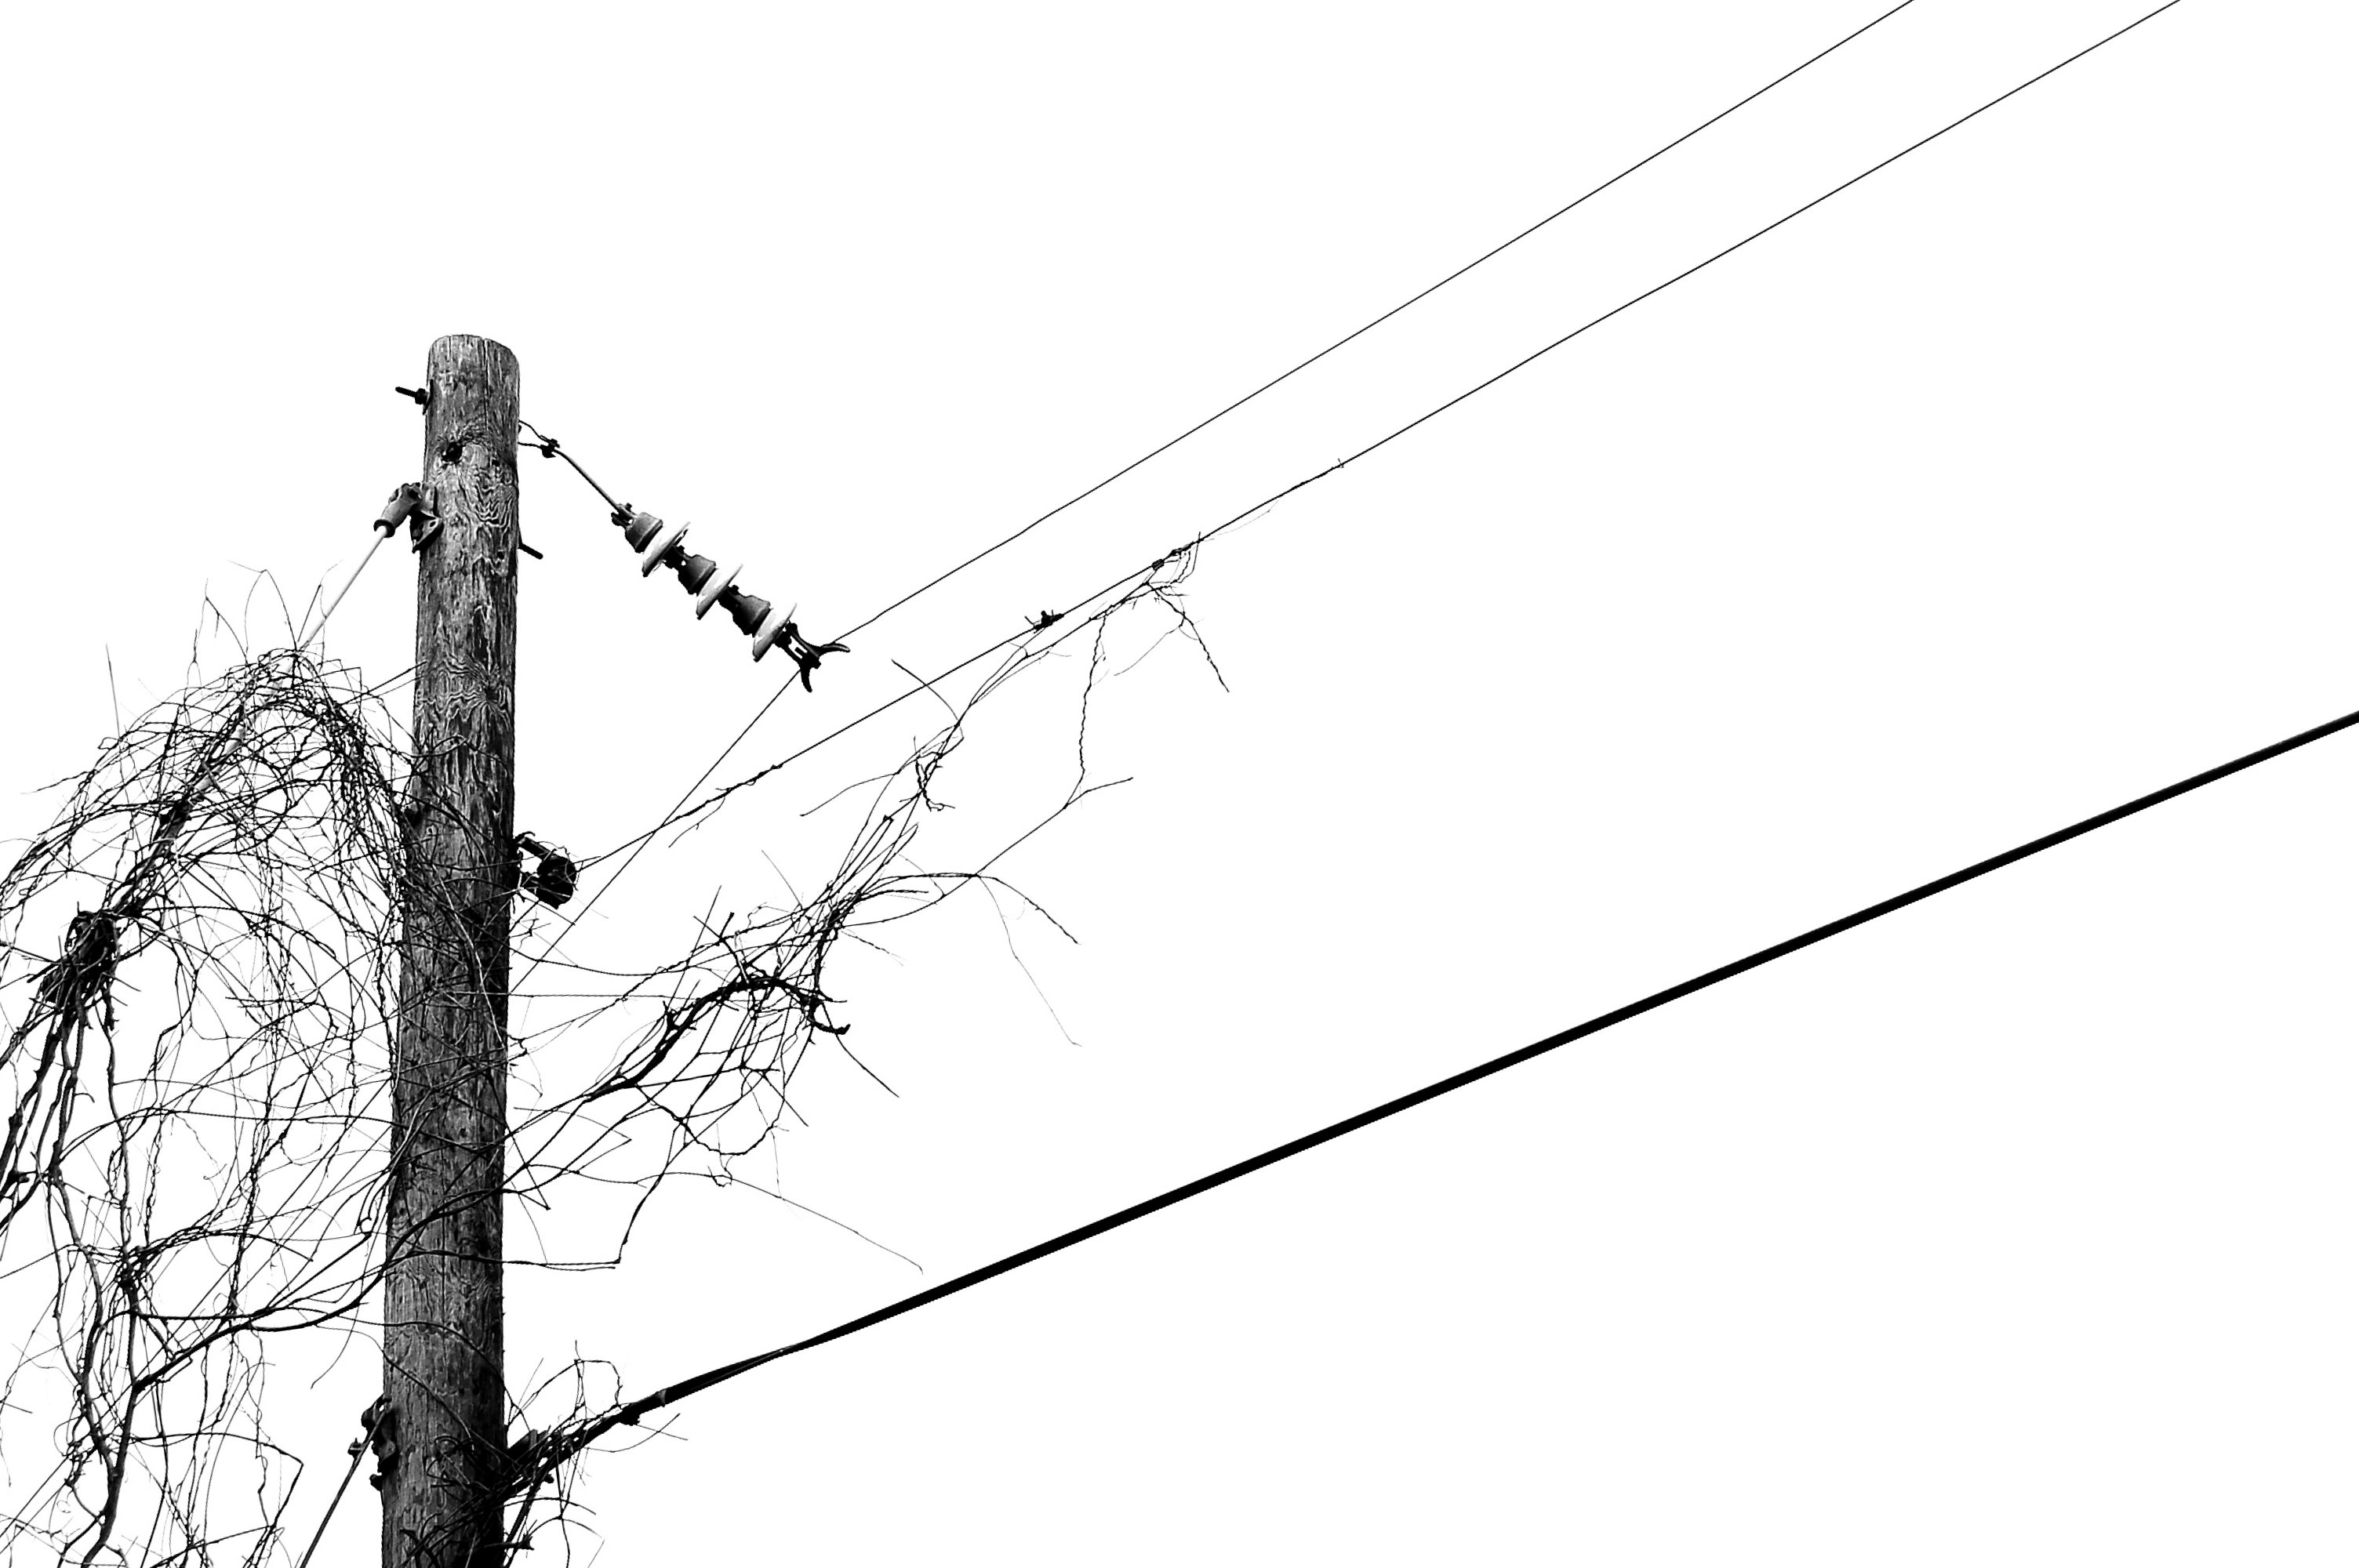 A Pole A Vine And Three Wires Of Electricty